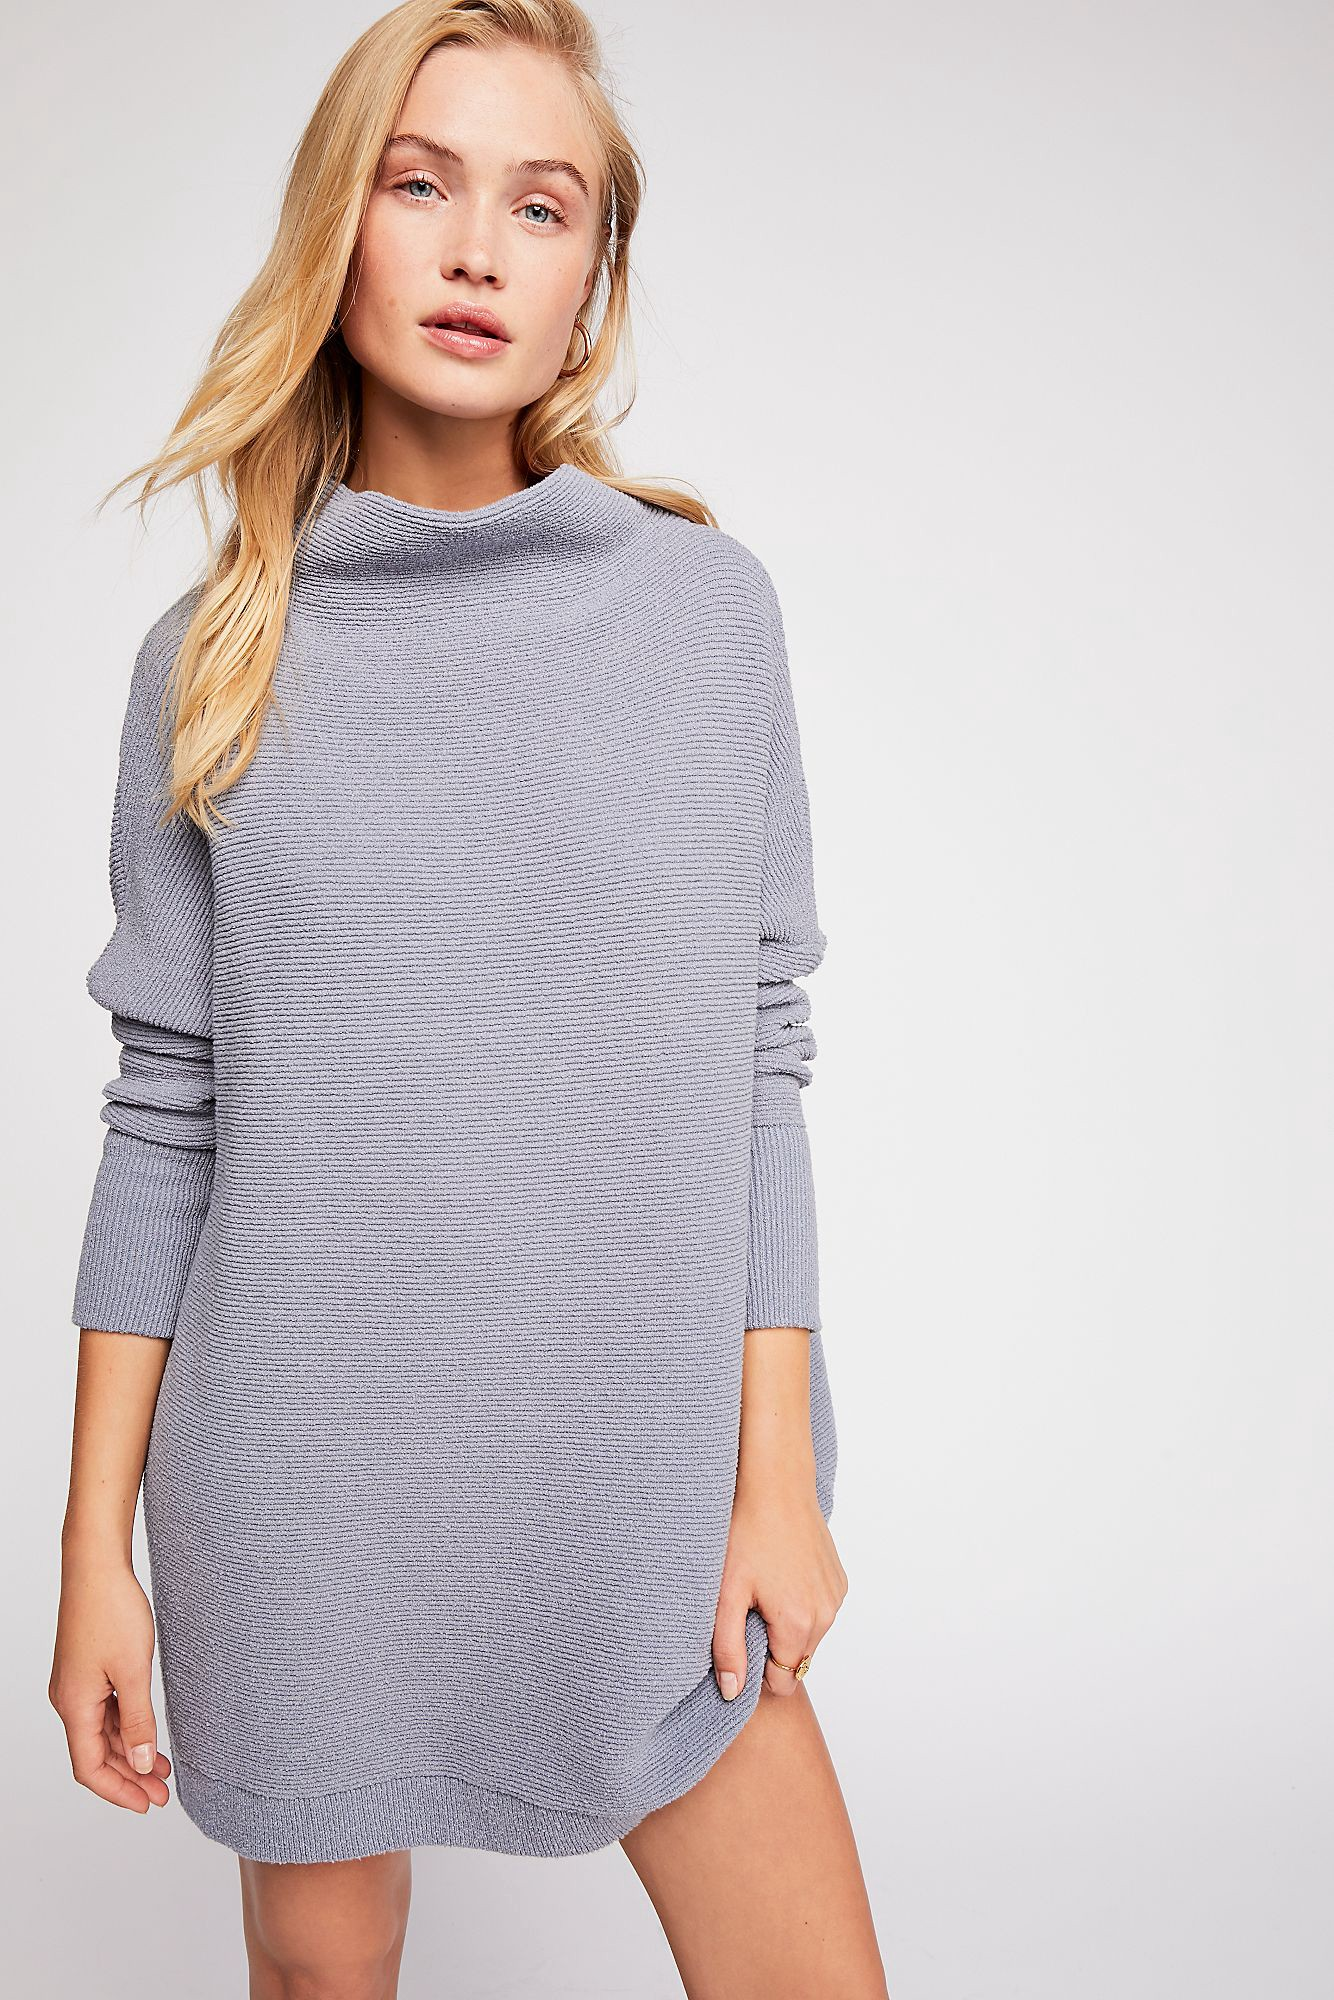 Ottoman Slouchy Tunic By Free People Products Pinterest Tunic